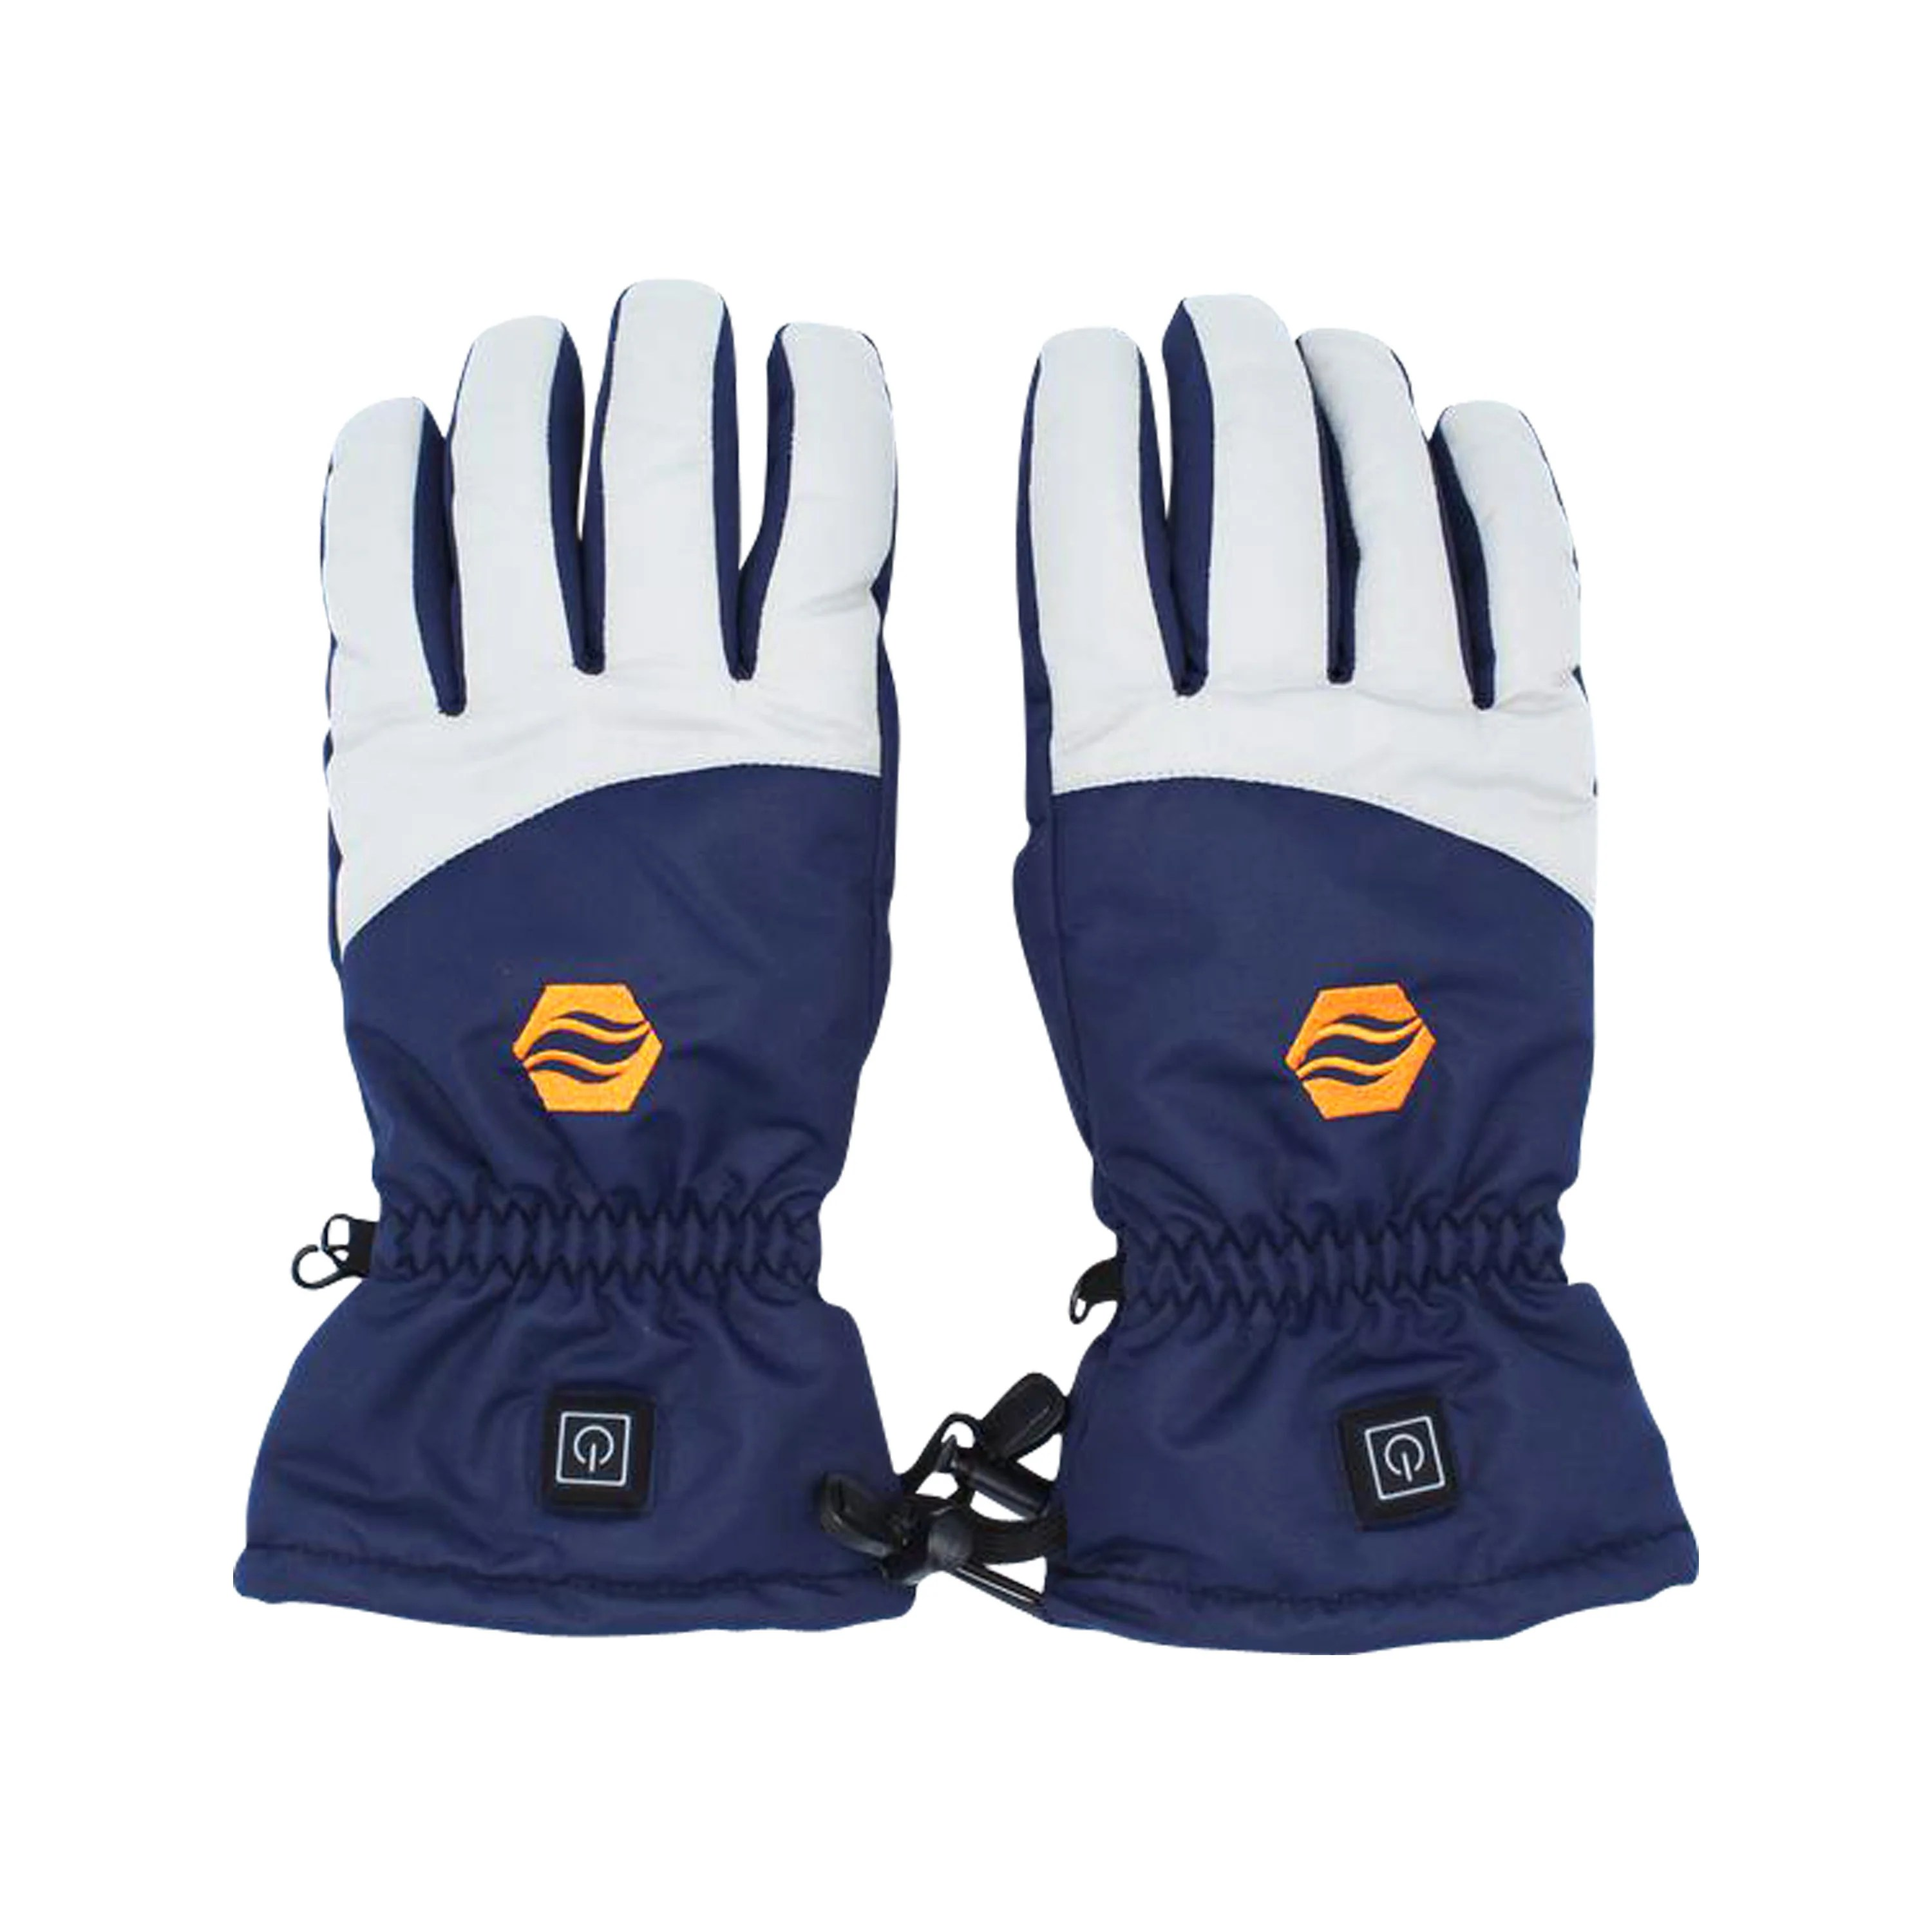 medium resolution of rechargeable heated gloves 3 level heated winter gloves for men women